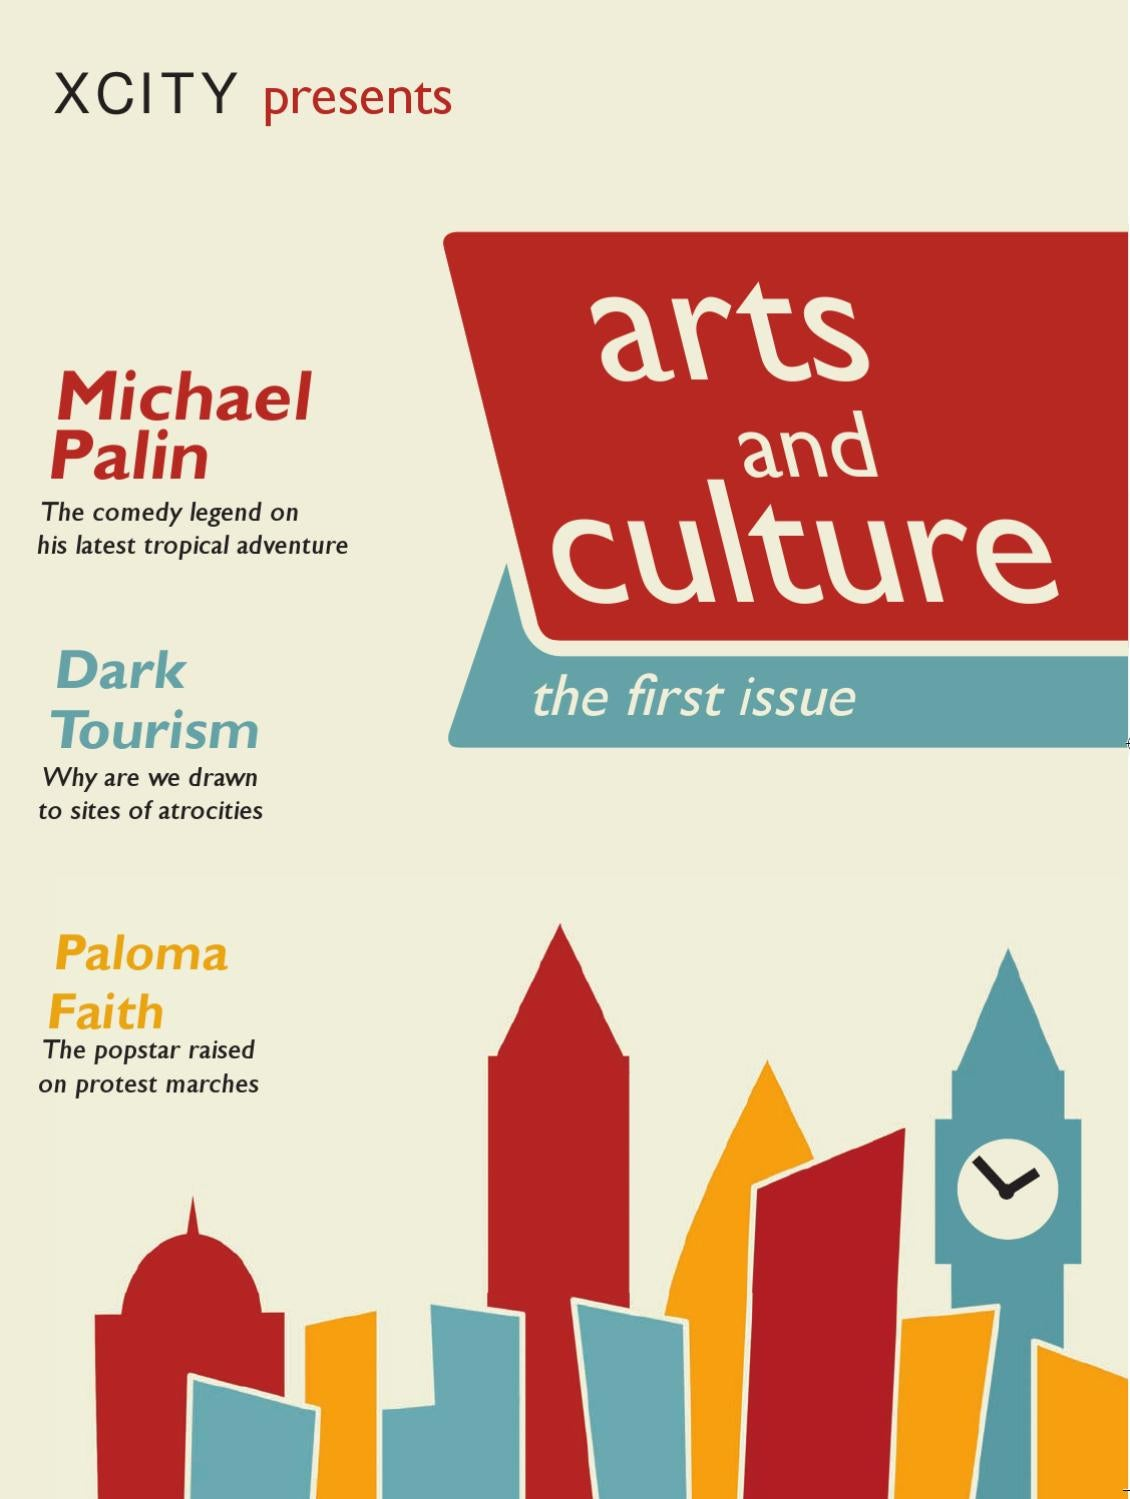 Xcity arts and culture by oli stratford issuu fandeluxe Choice Image